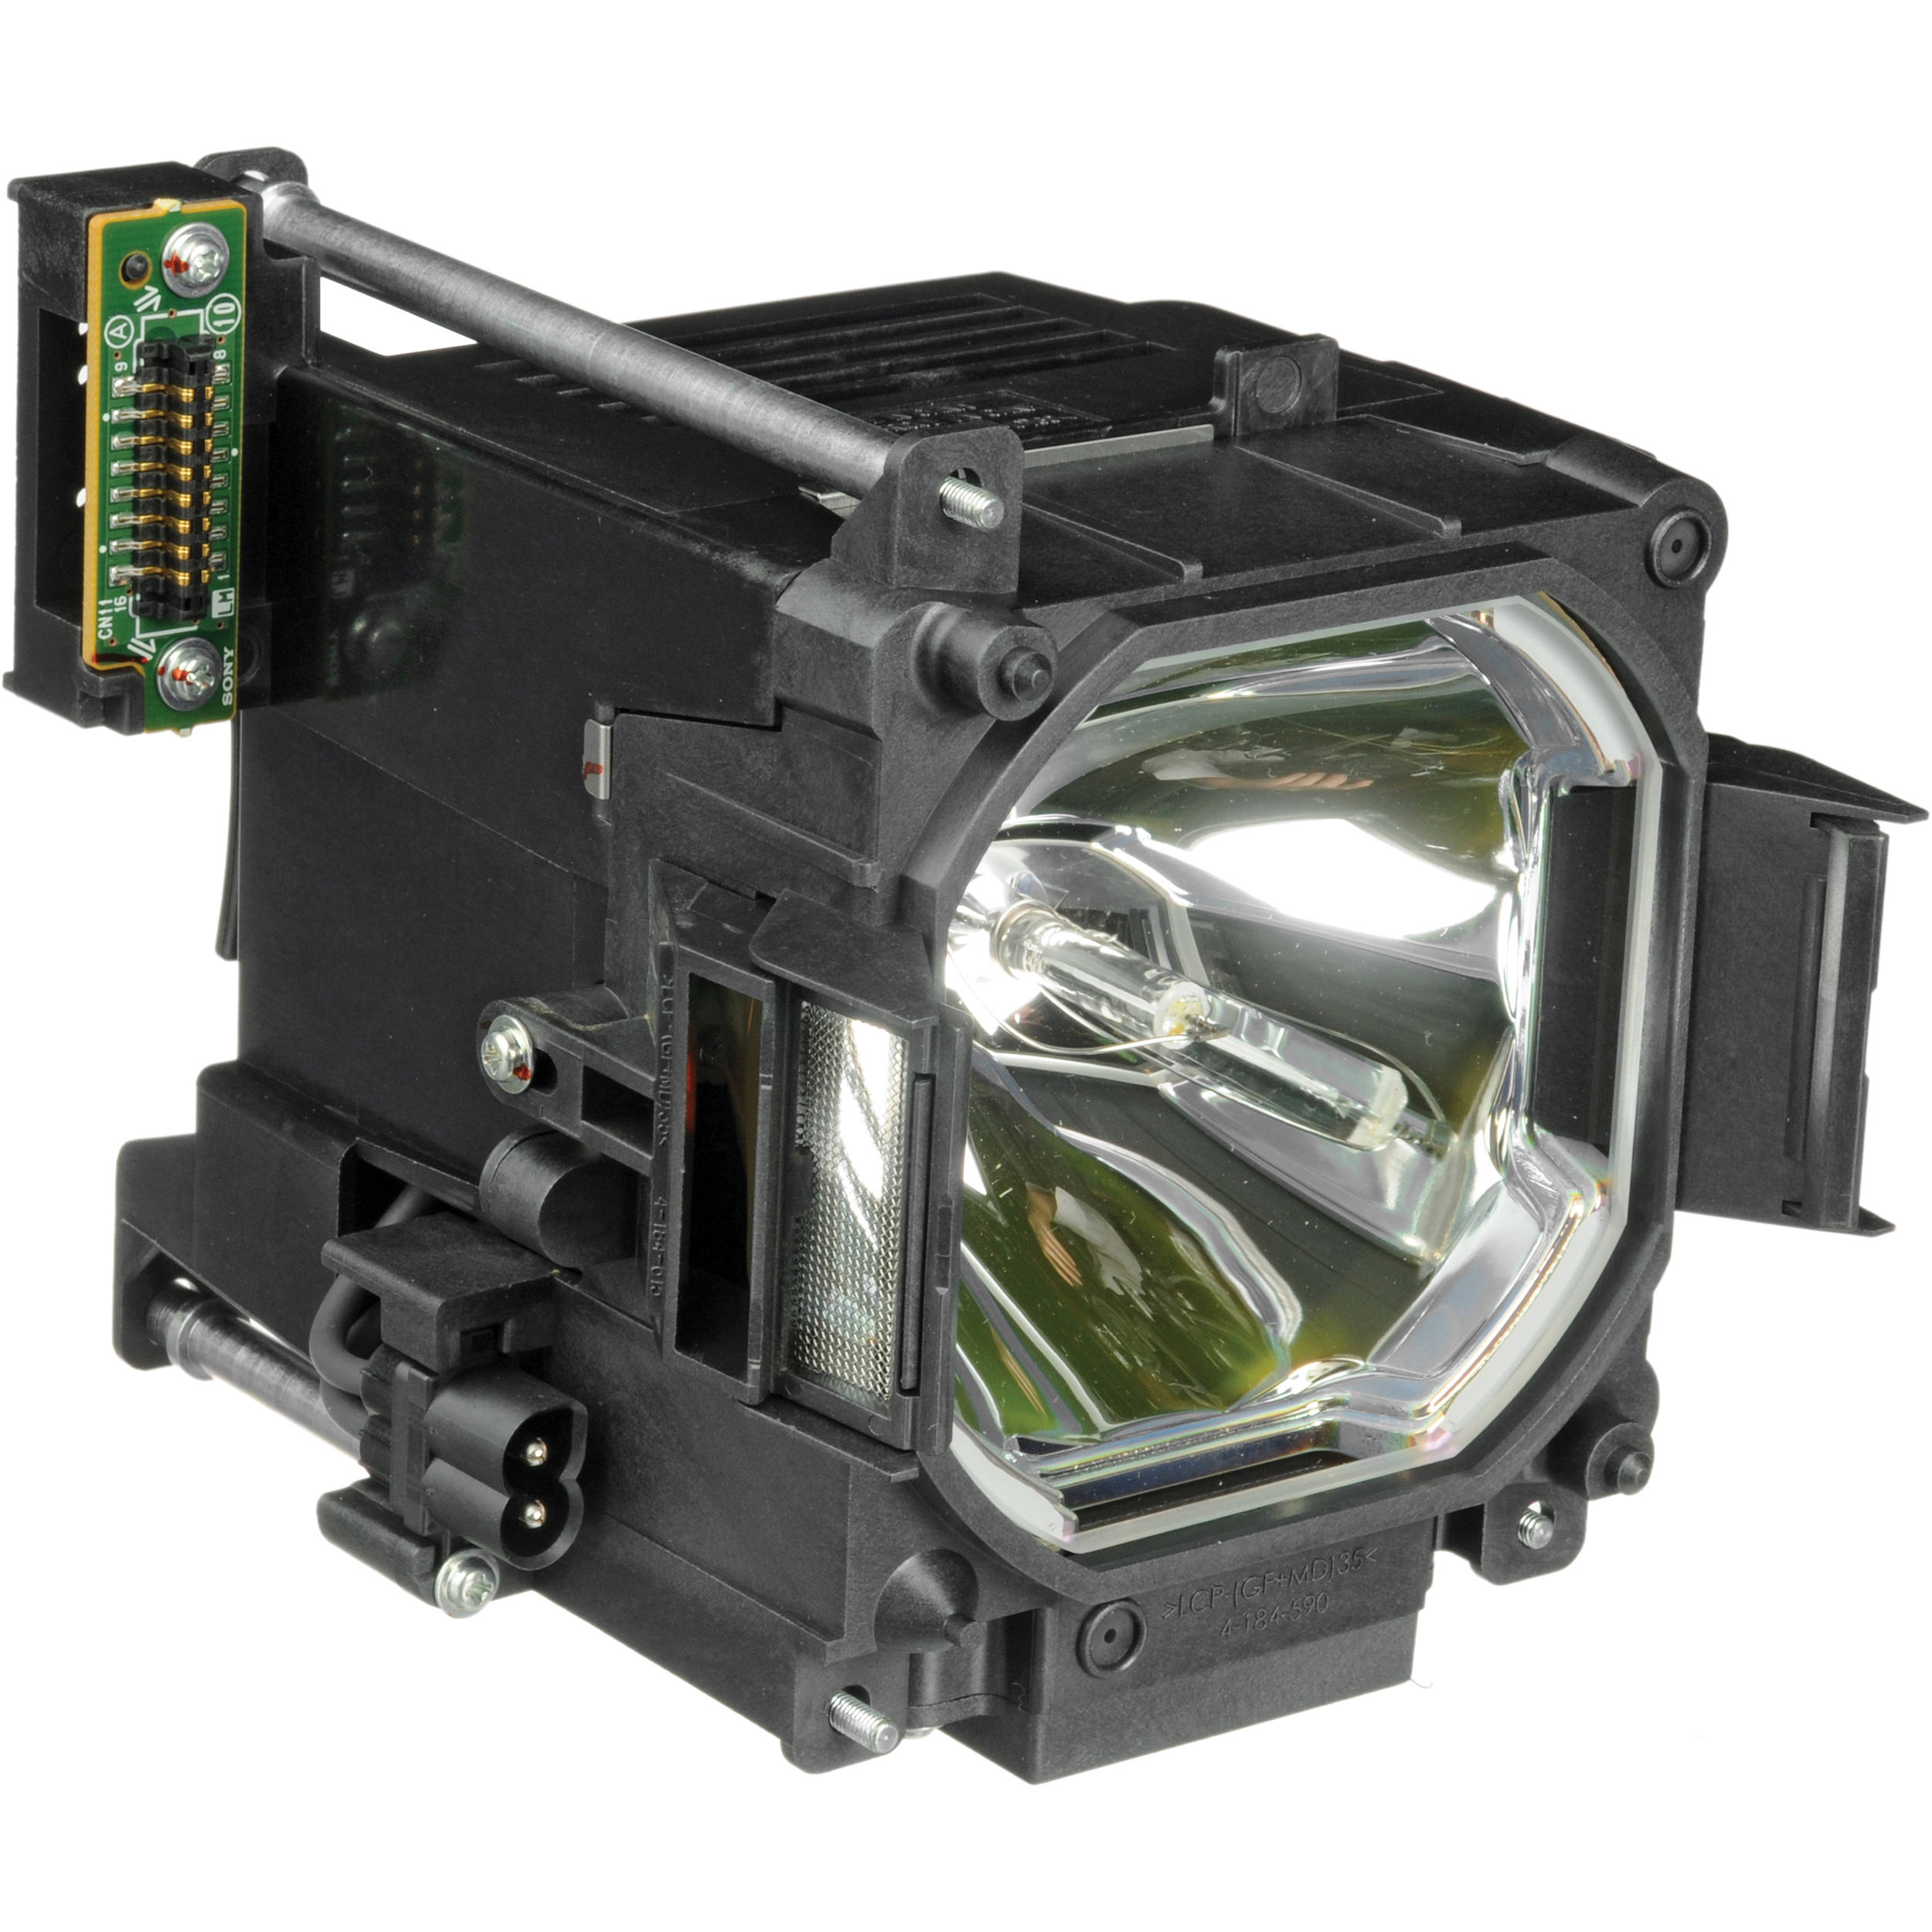 Sony LMP-F330 Replacement Lamp for the Sony VPL-FX500L LMP-F330